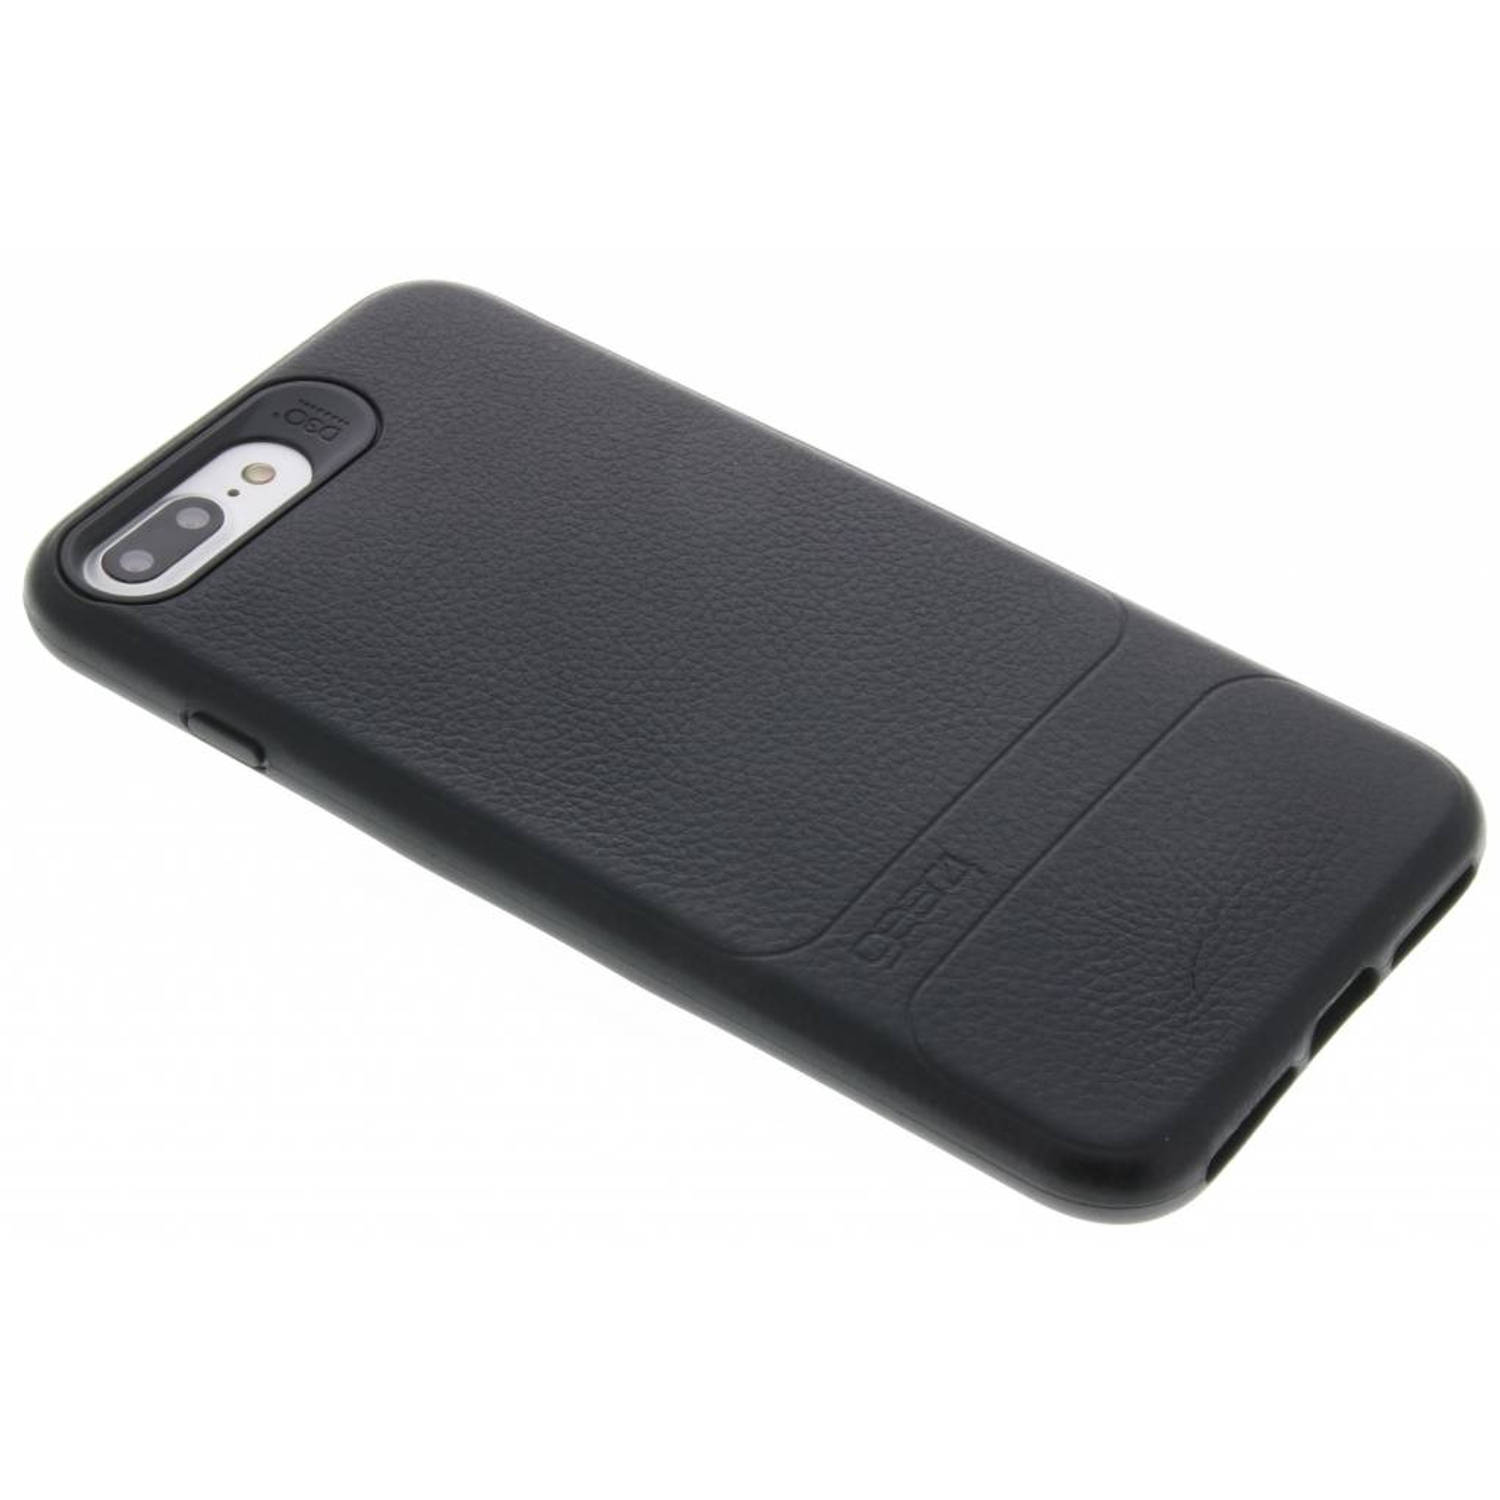 D3O Mayfair Case voor de iPhone 8 Plus / 7 Plus - Zwart